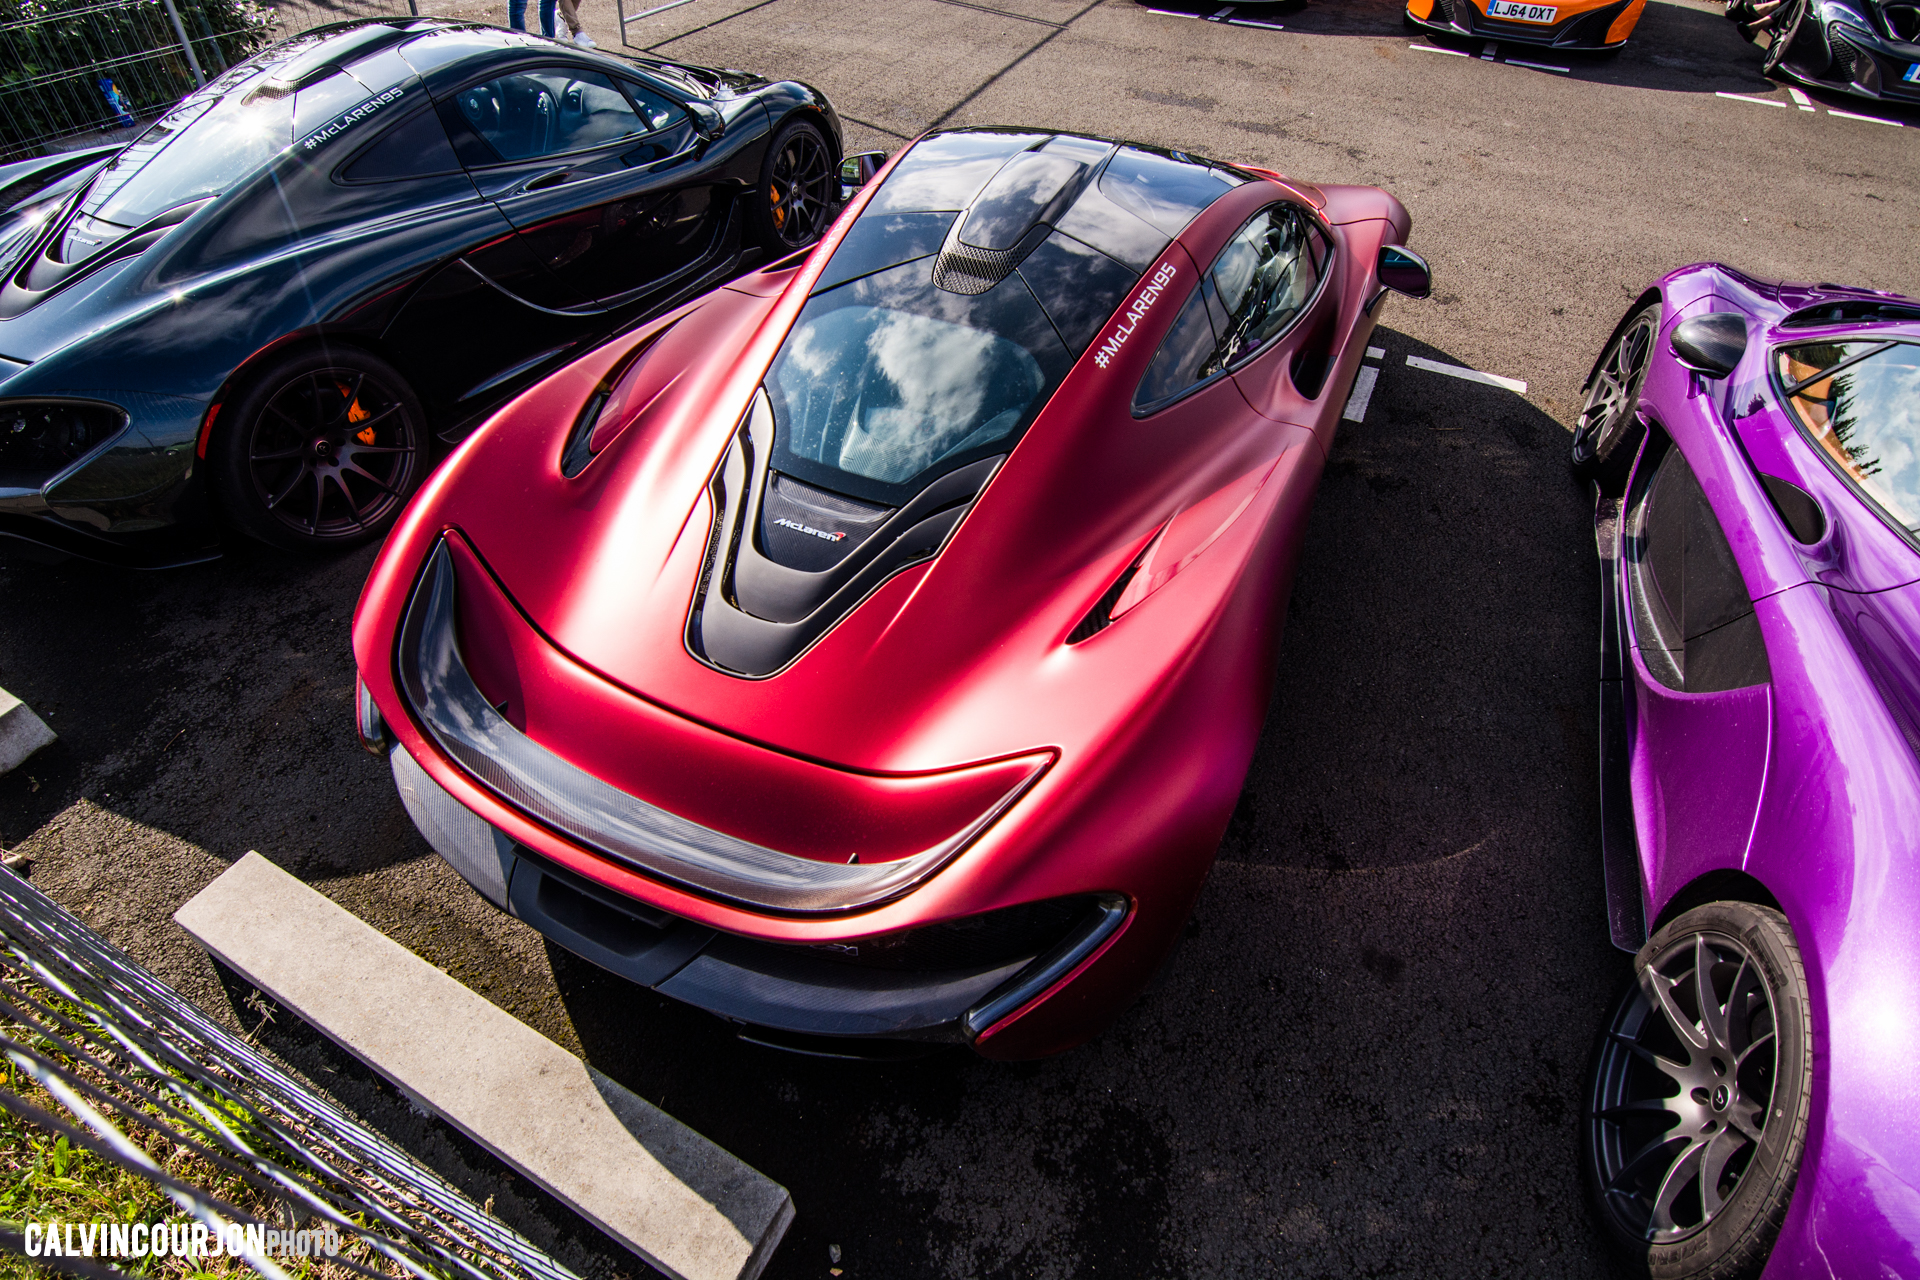 McLaren P1 - Satin Volcano Red by MSO - McLaren95 parade - Le Mans - 2015 - photo Calvin Courjon